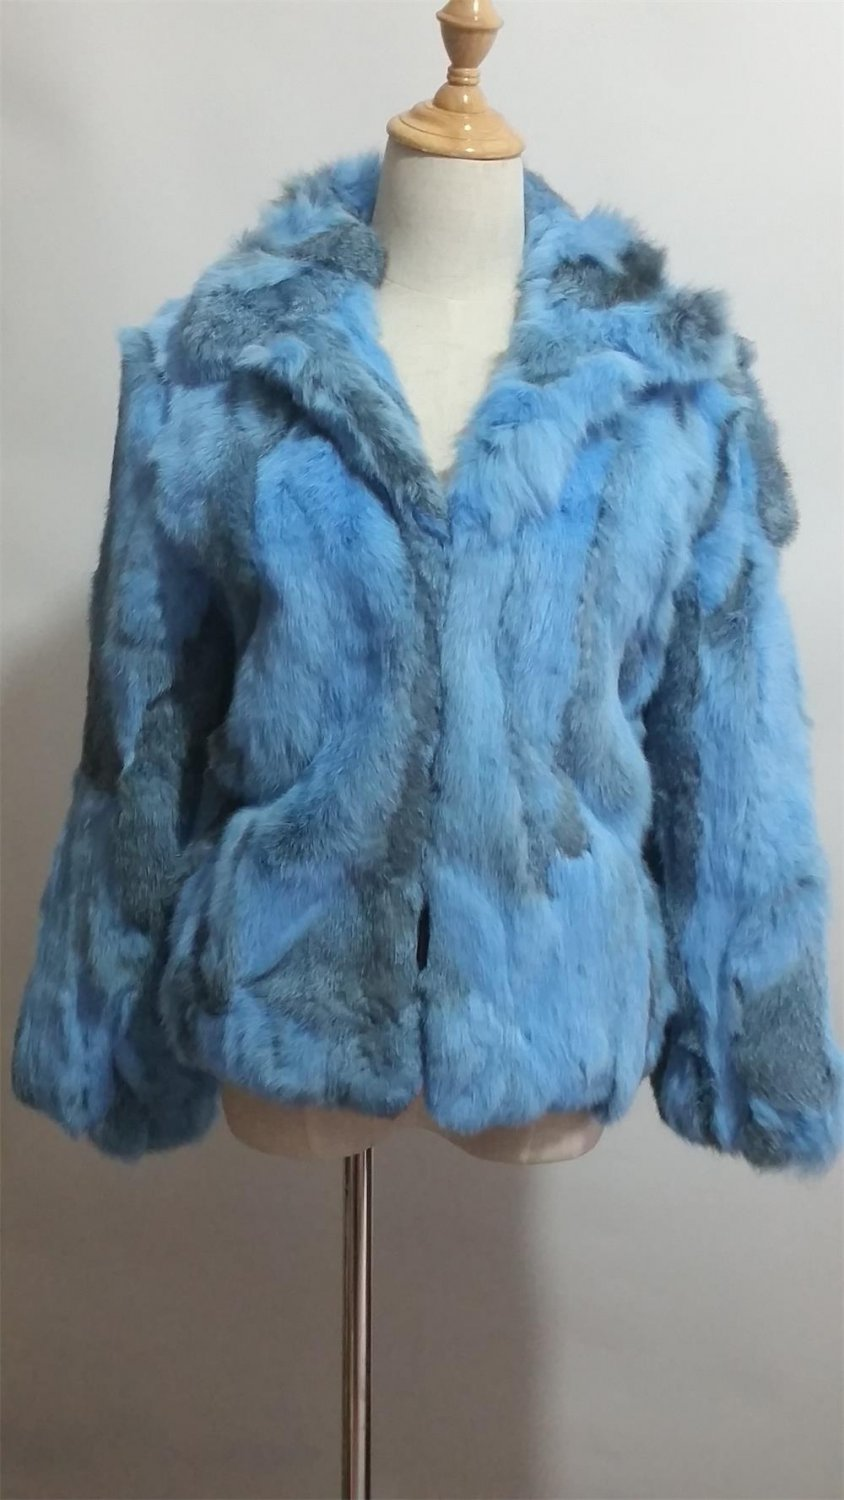 Blue Patchwork rabbit fur jacket stand up collar